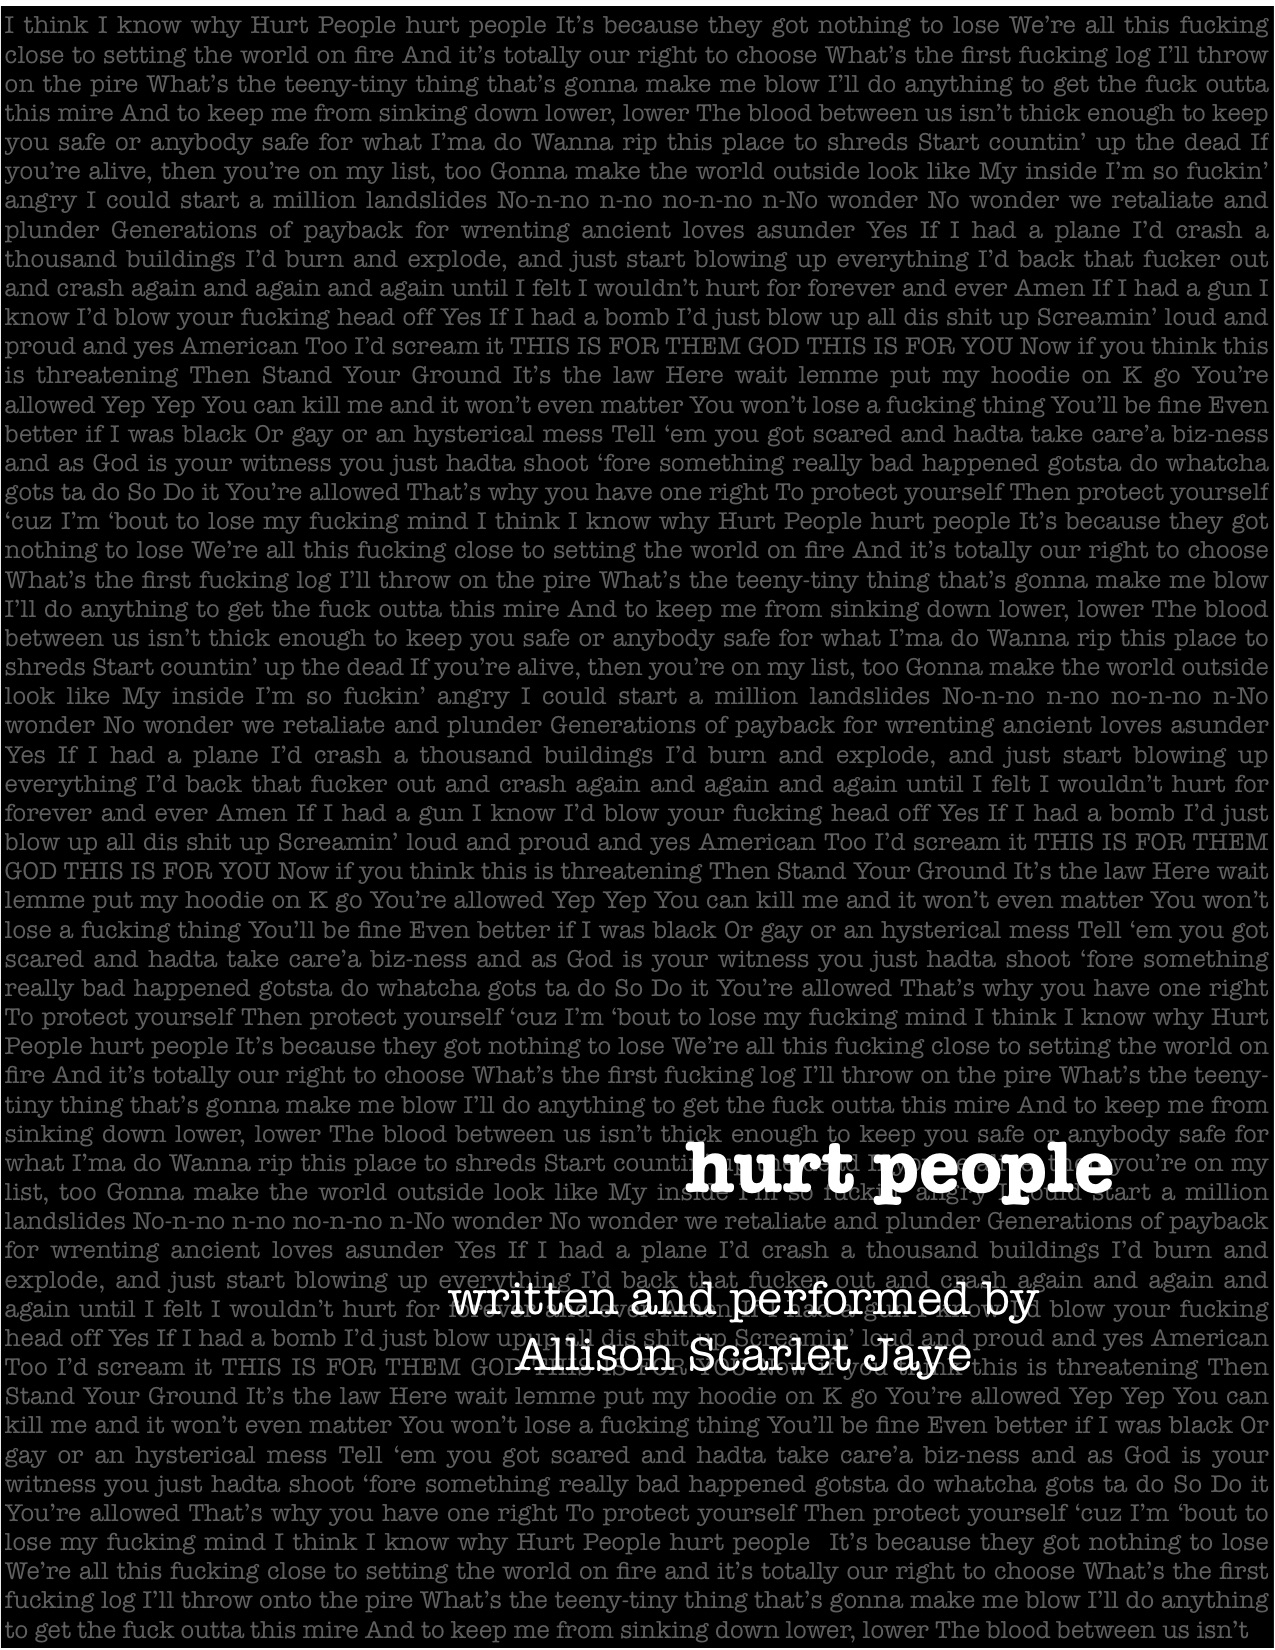 allisonscarletjaye.com/hurt-people